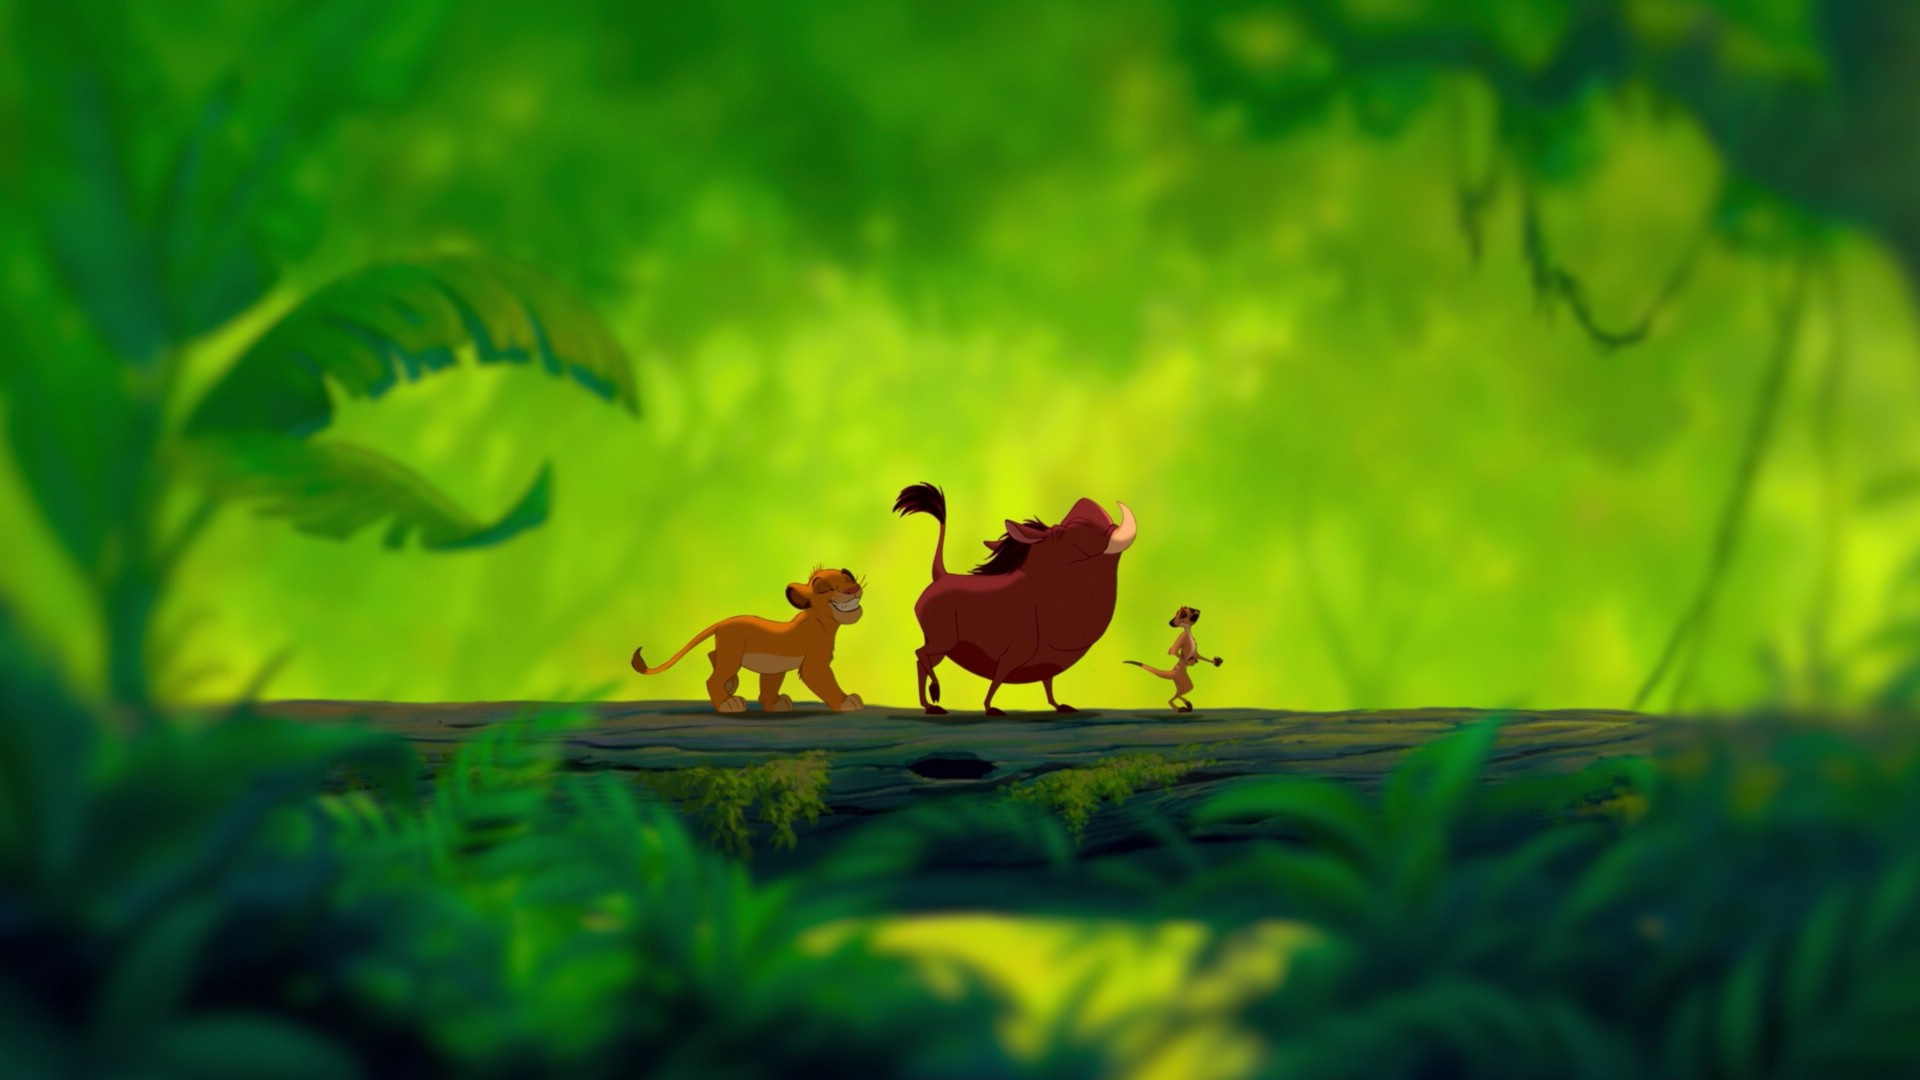 The Lion King HD Wallpaper | Background Image | 1920x1080 ...